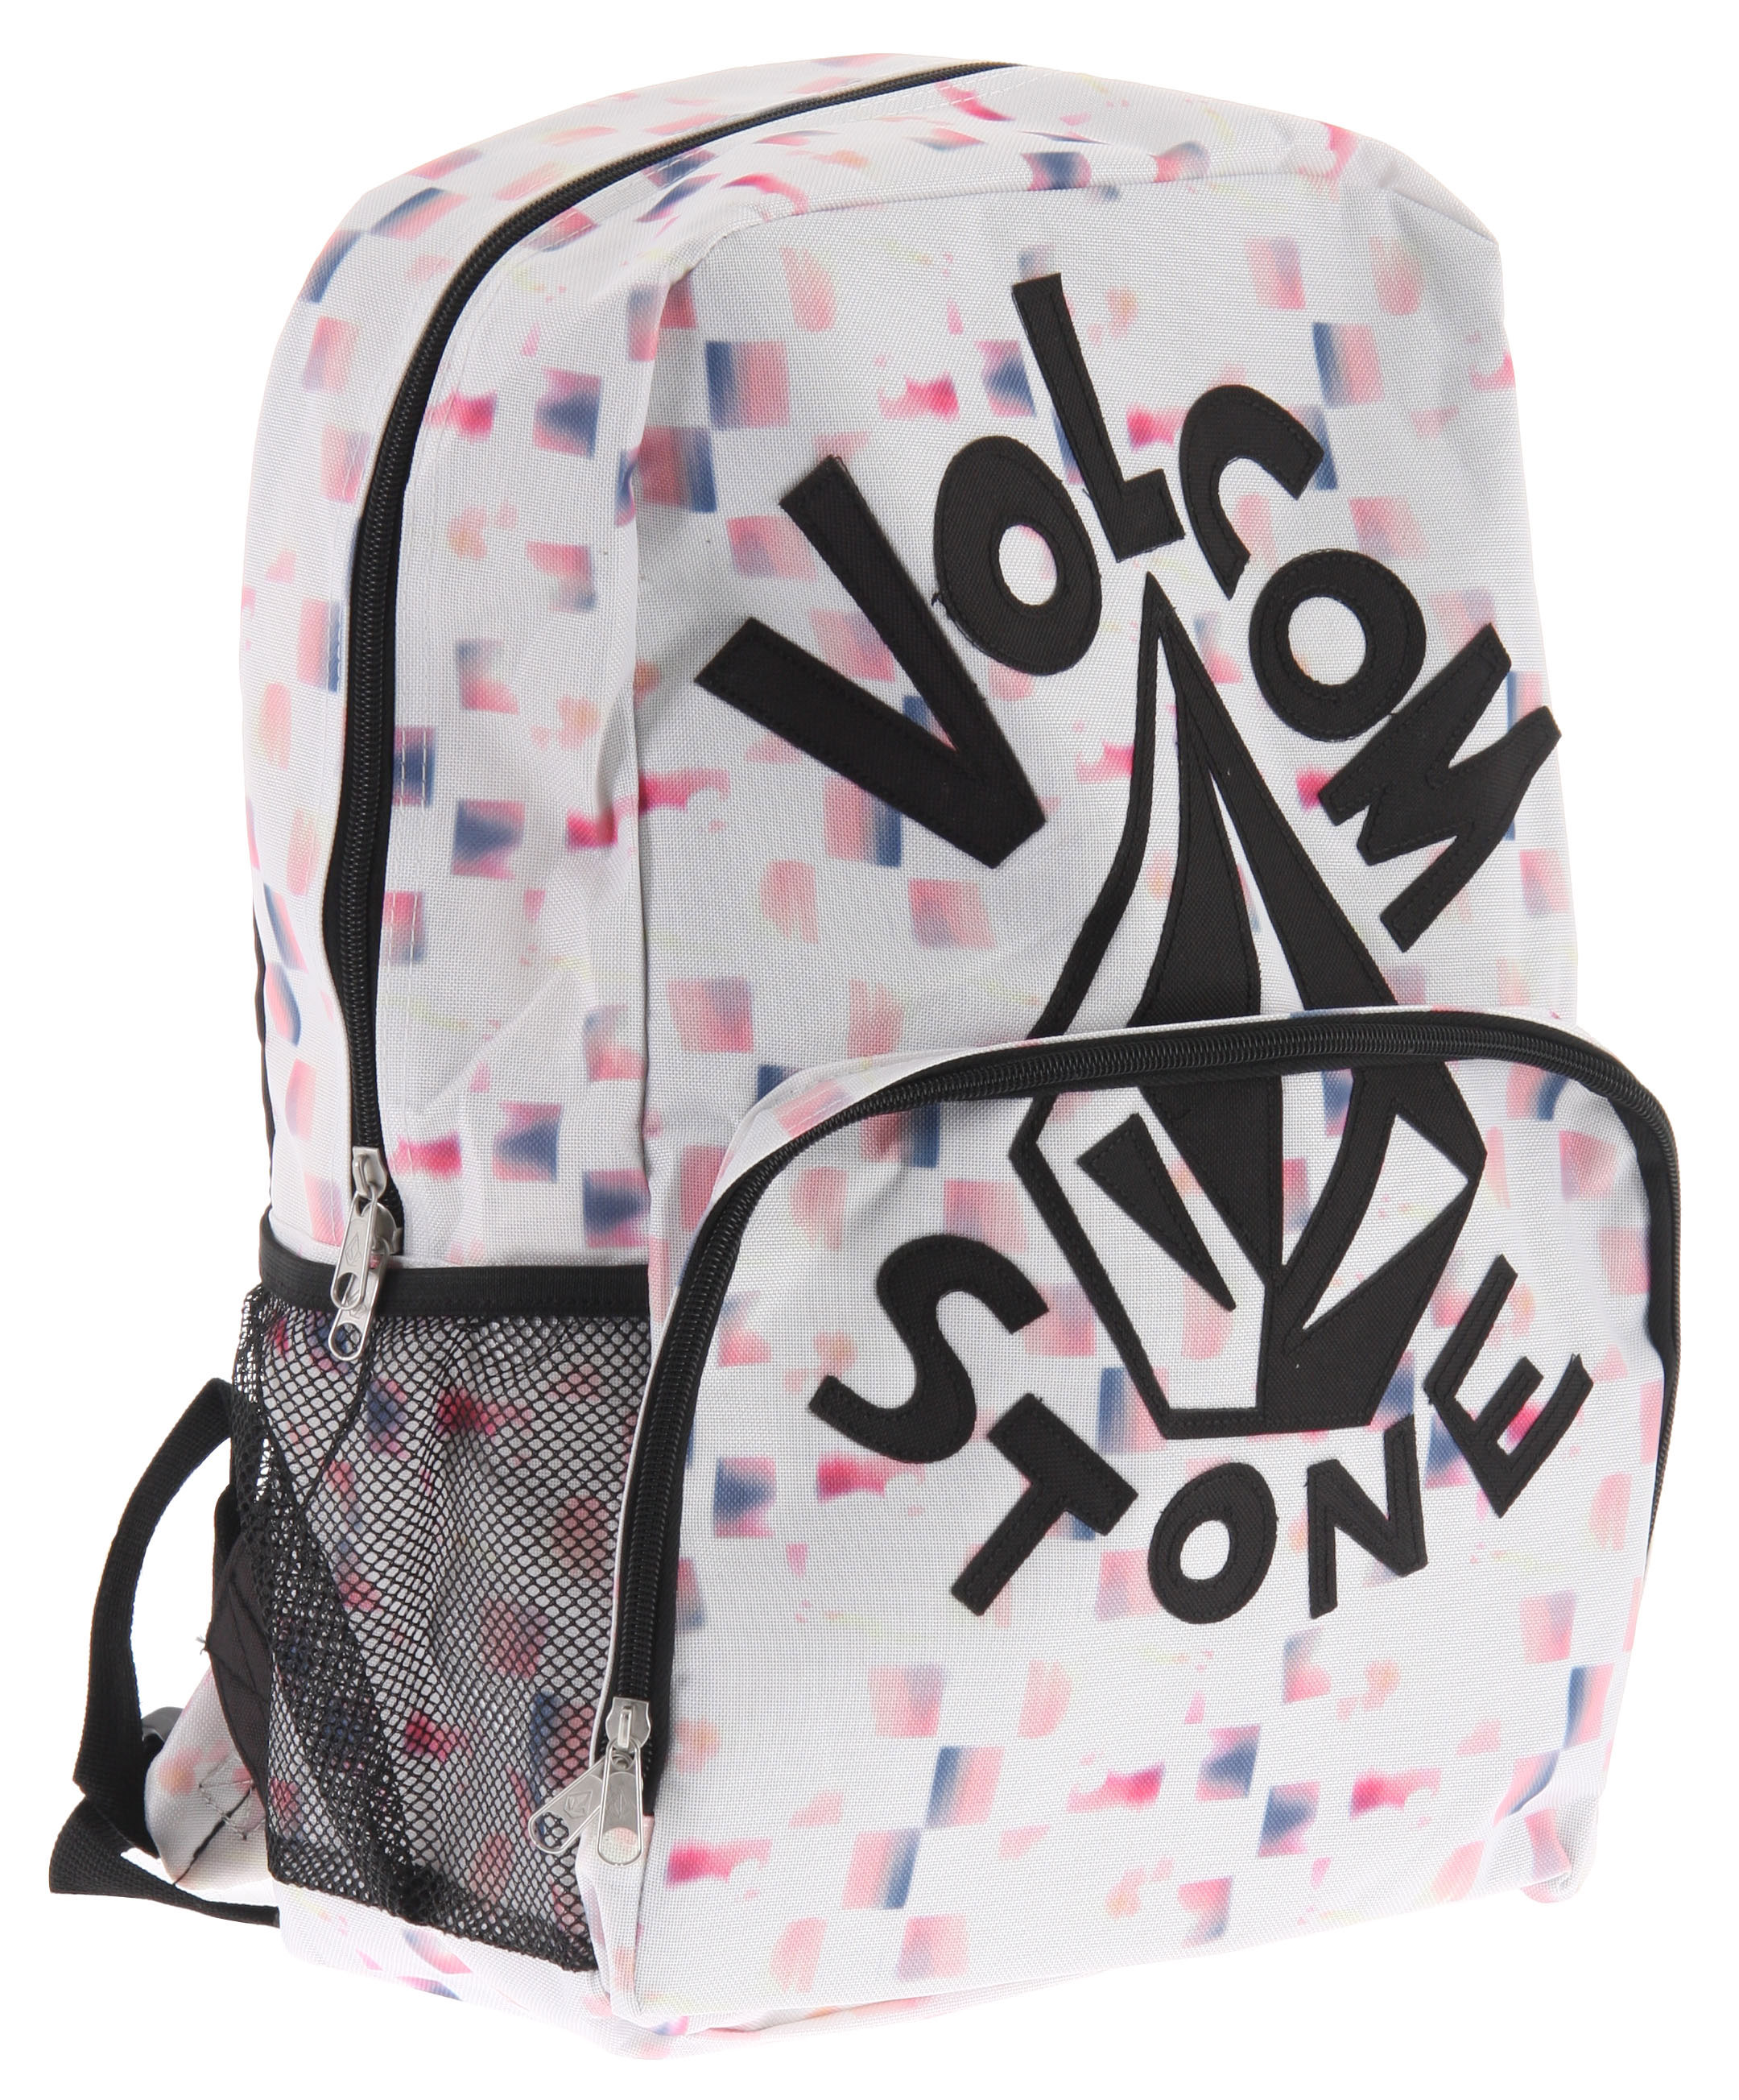 "Surf Key Features of the Volcom Equator Backpack: Printed poly backpack .Large front pockets H2O pockets at sides 18""H x 11.5""W x 6""D 100% Polyester - $22.95"